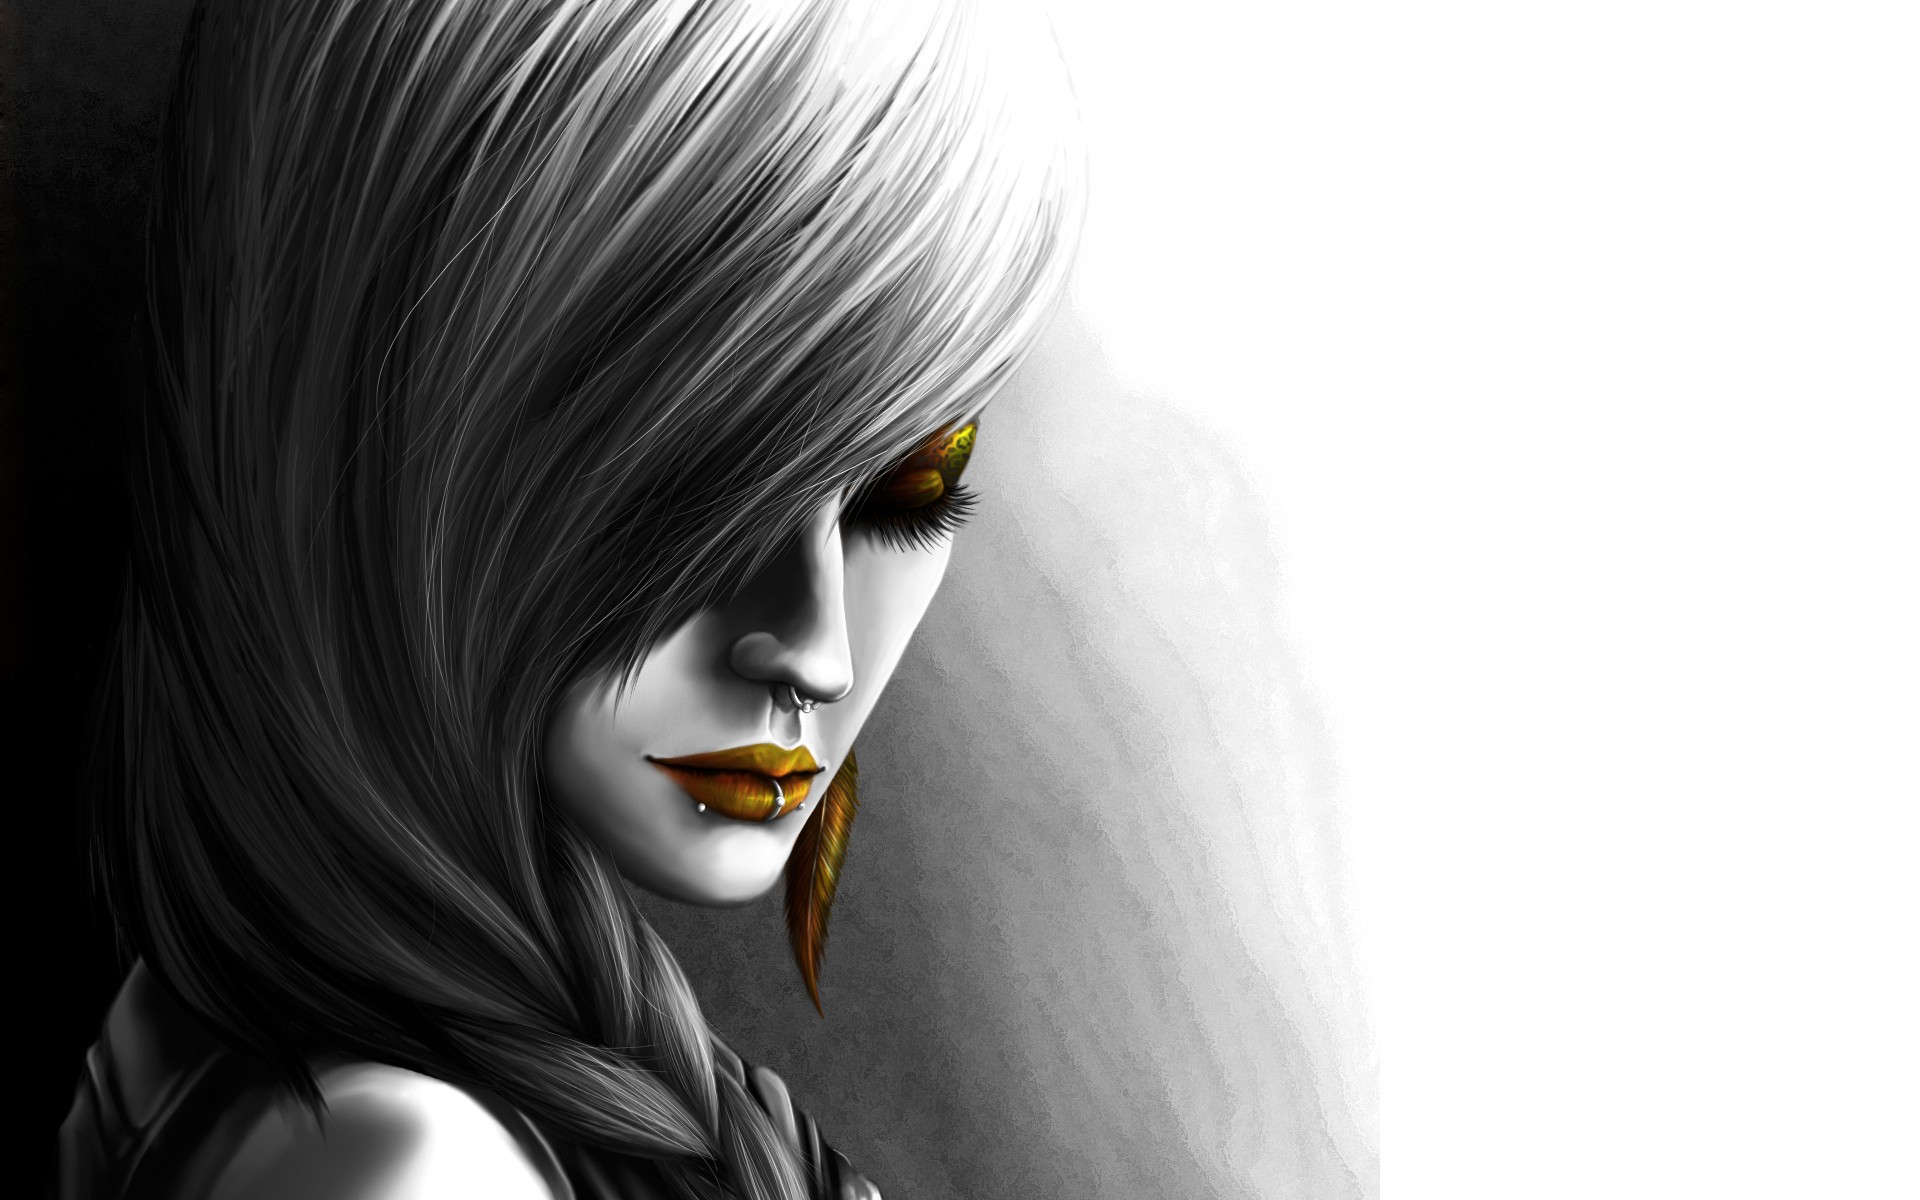 Drawn wallpaper sketch WallpaperSafari Woman Drawing Black wallpapers